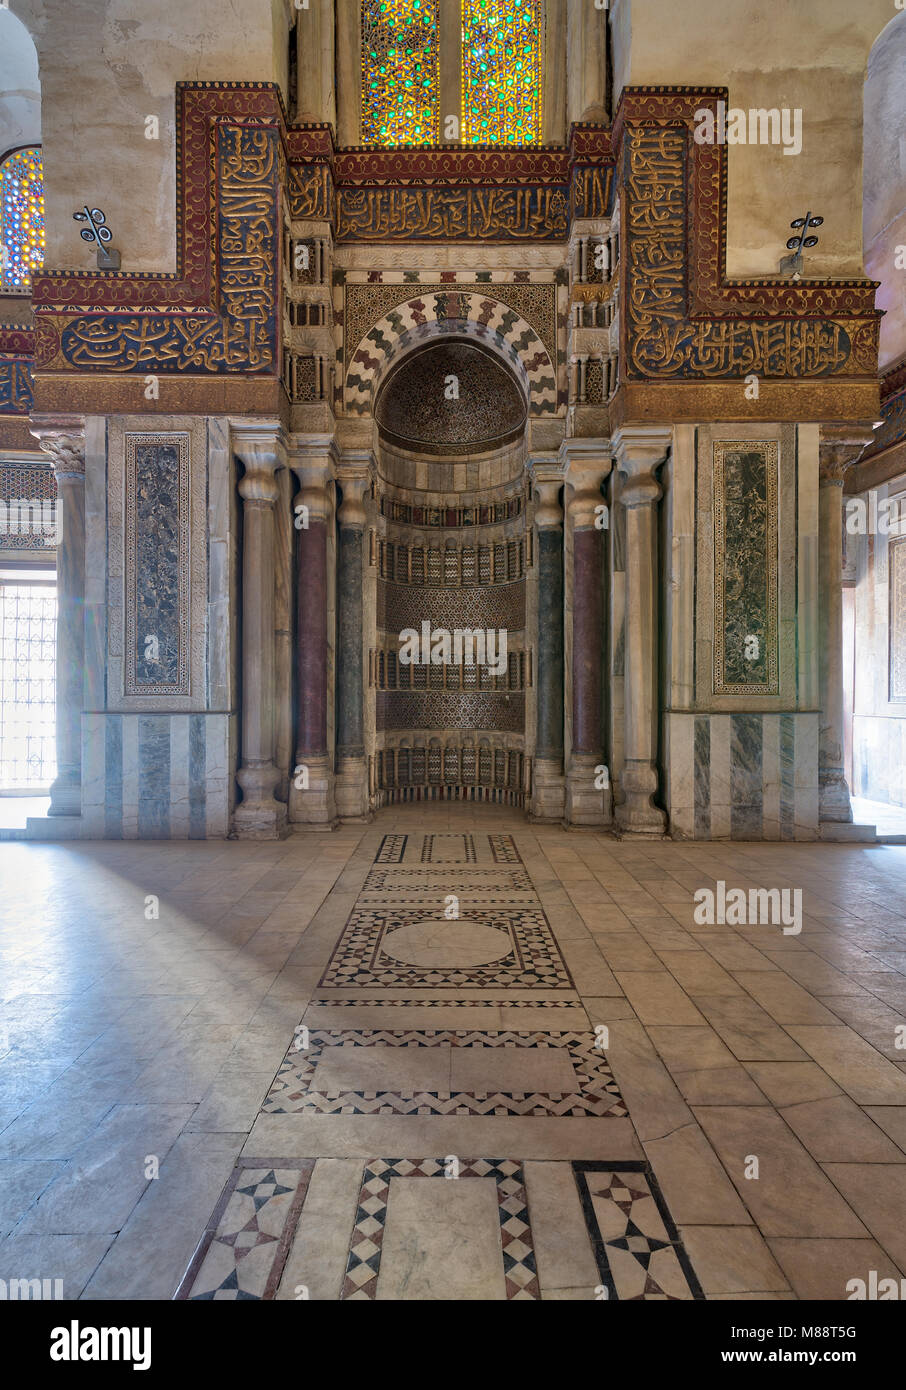 Cairo, Egypt - February 3, 2018: Mausoleum of Sultan Qalawun with decorated colorful marble niche (Mihrab) embedded - Stock Image